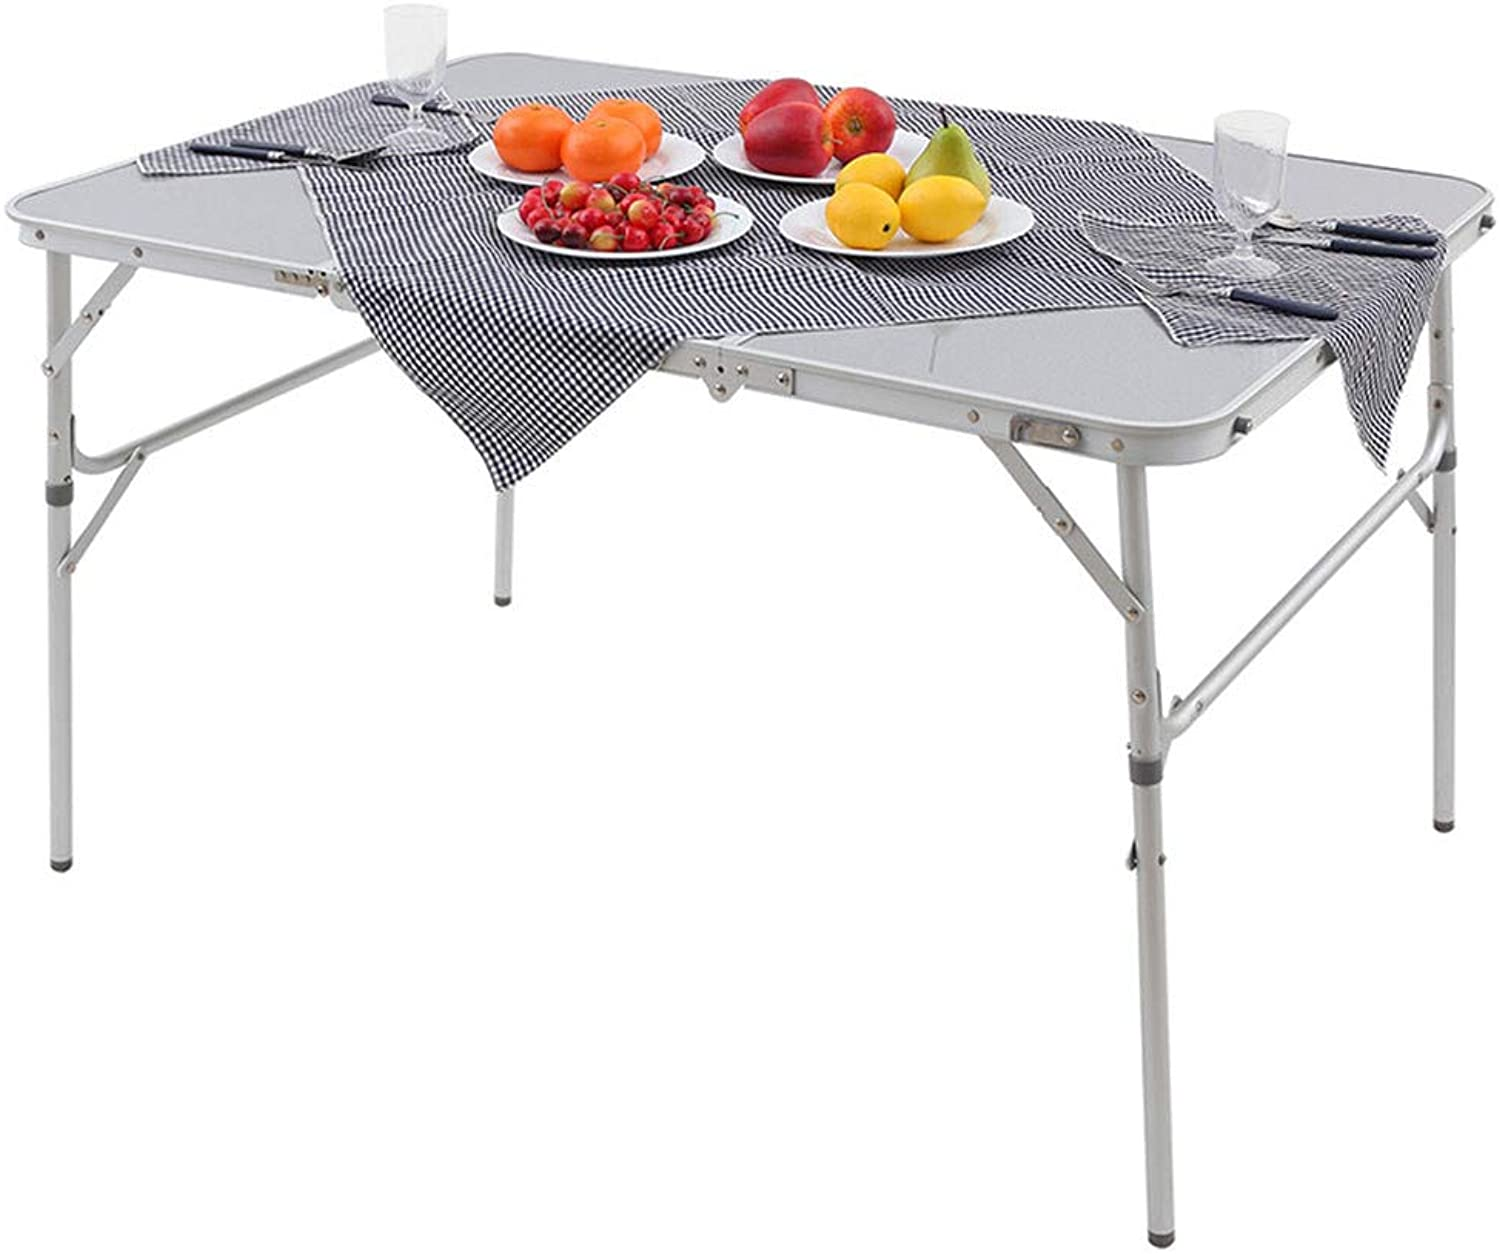 Aluminum Alloy 3Fold Camp Table with Carry Bag, Adjustable Height, Portable Sturdy Compact Storage for Camping, Outdoor, Picnic, Vacation, Call Out Length